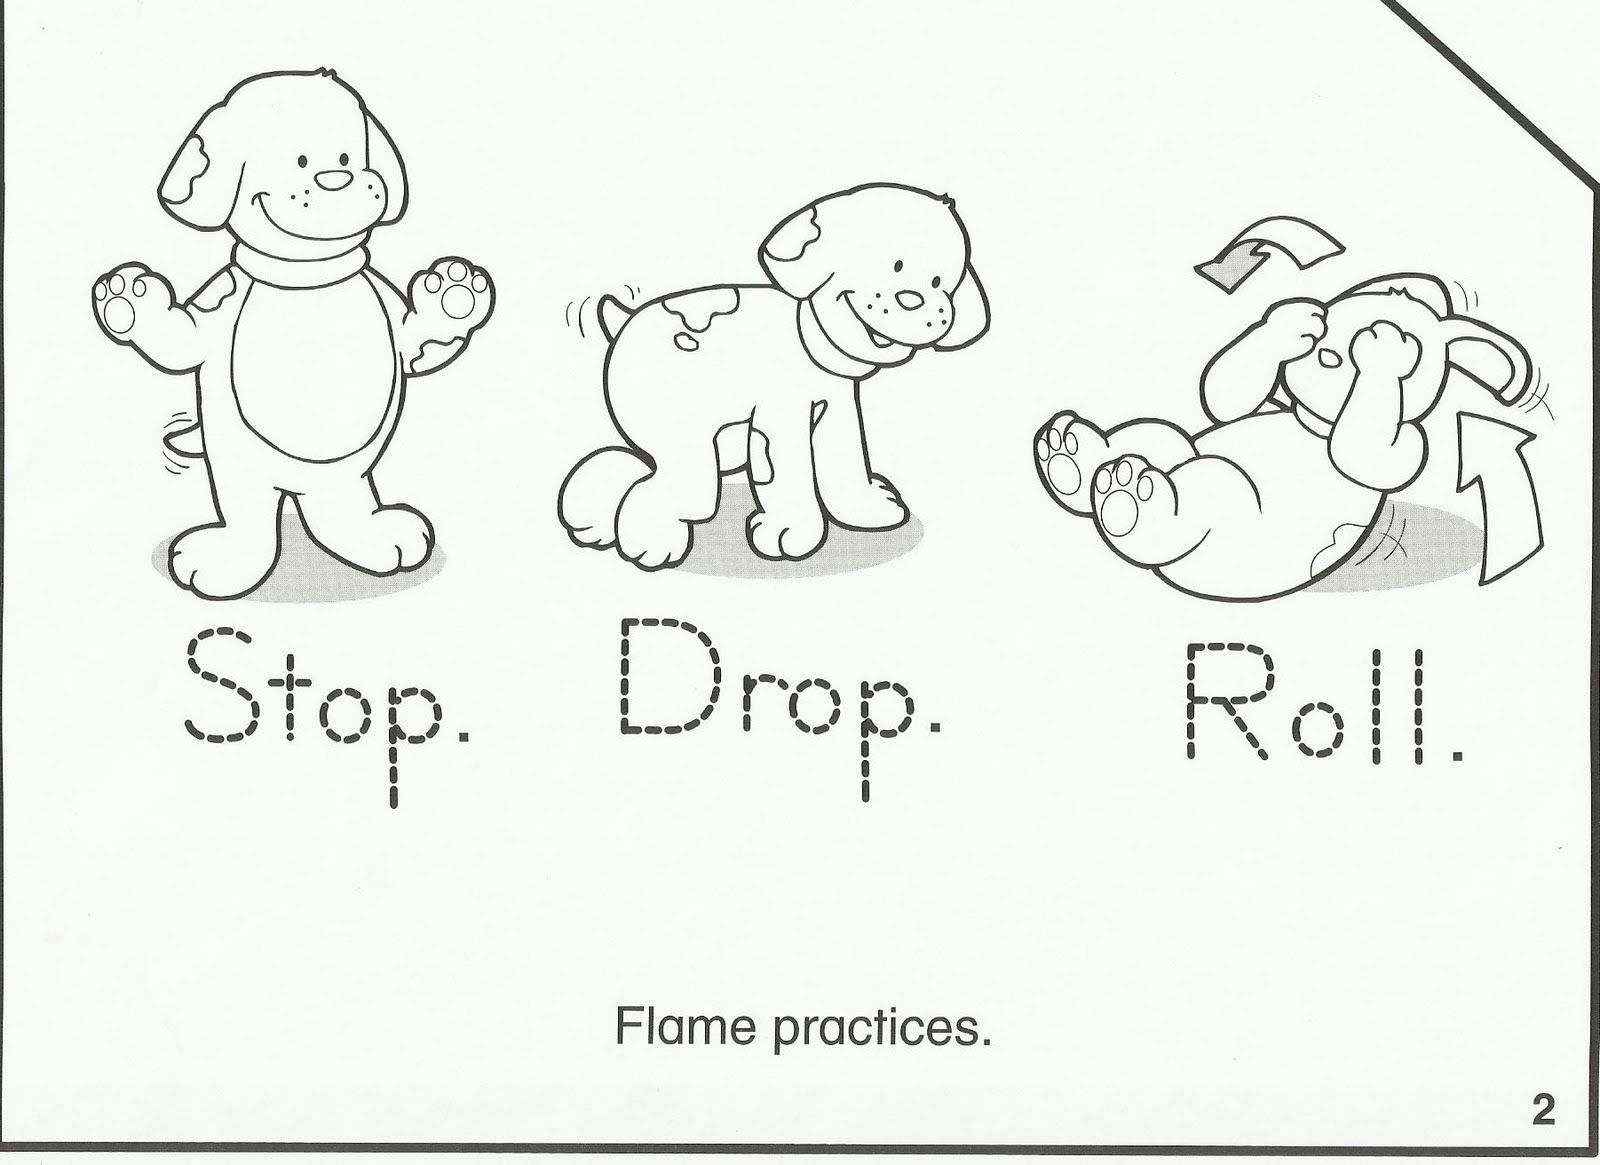 fire safety coloring pages for preschool preschool crafts